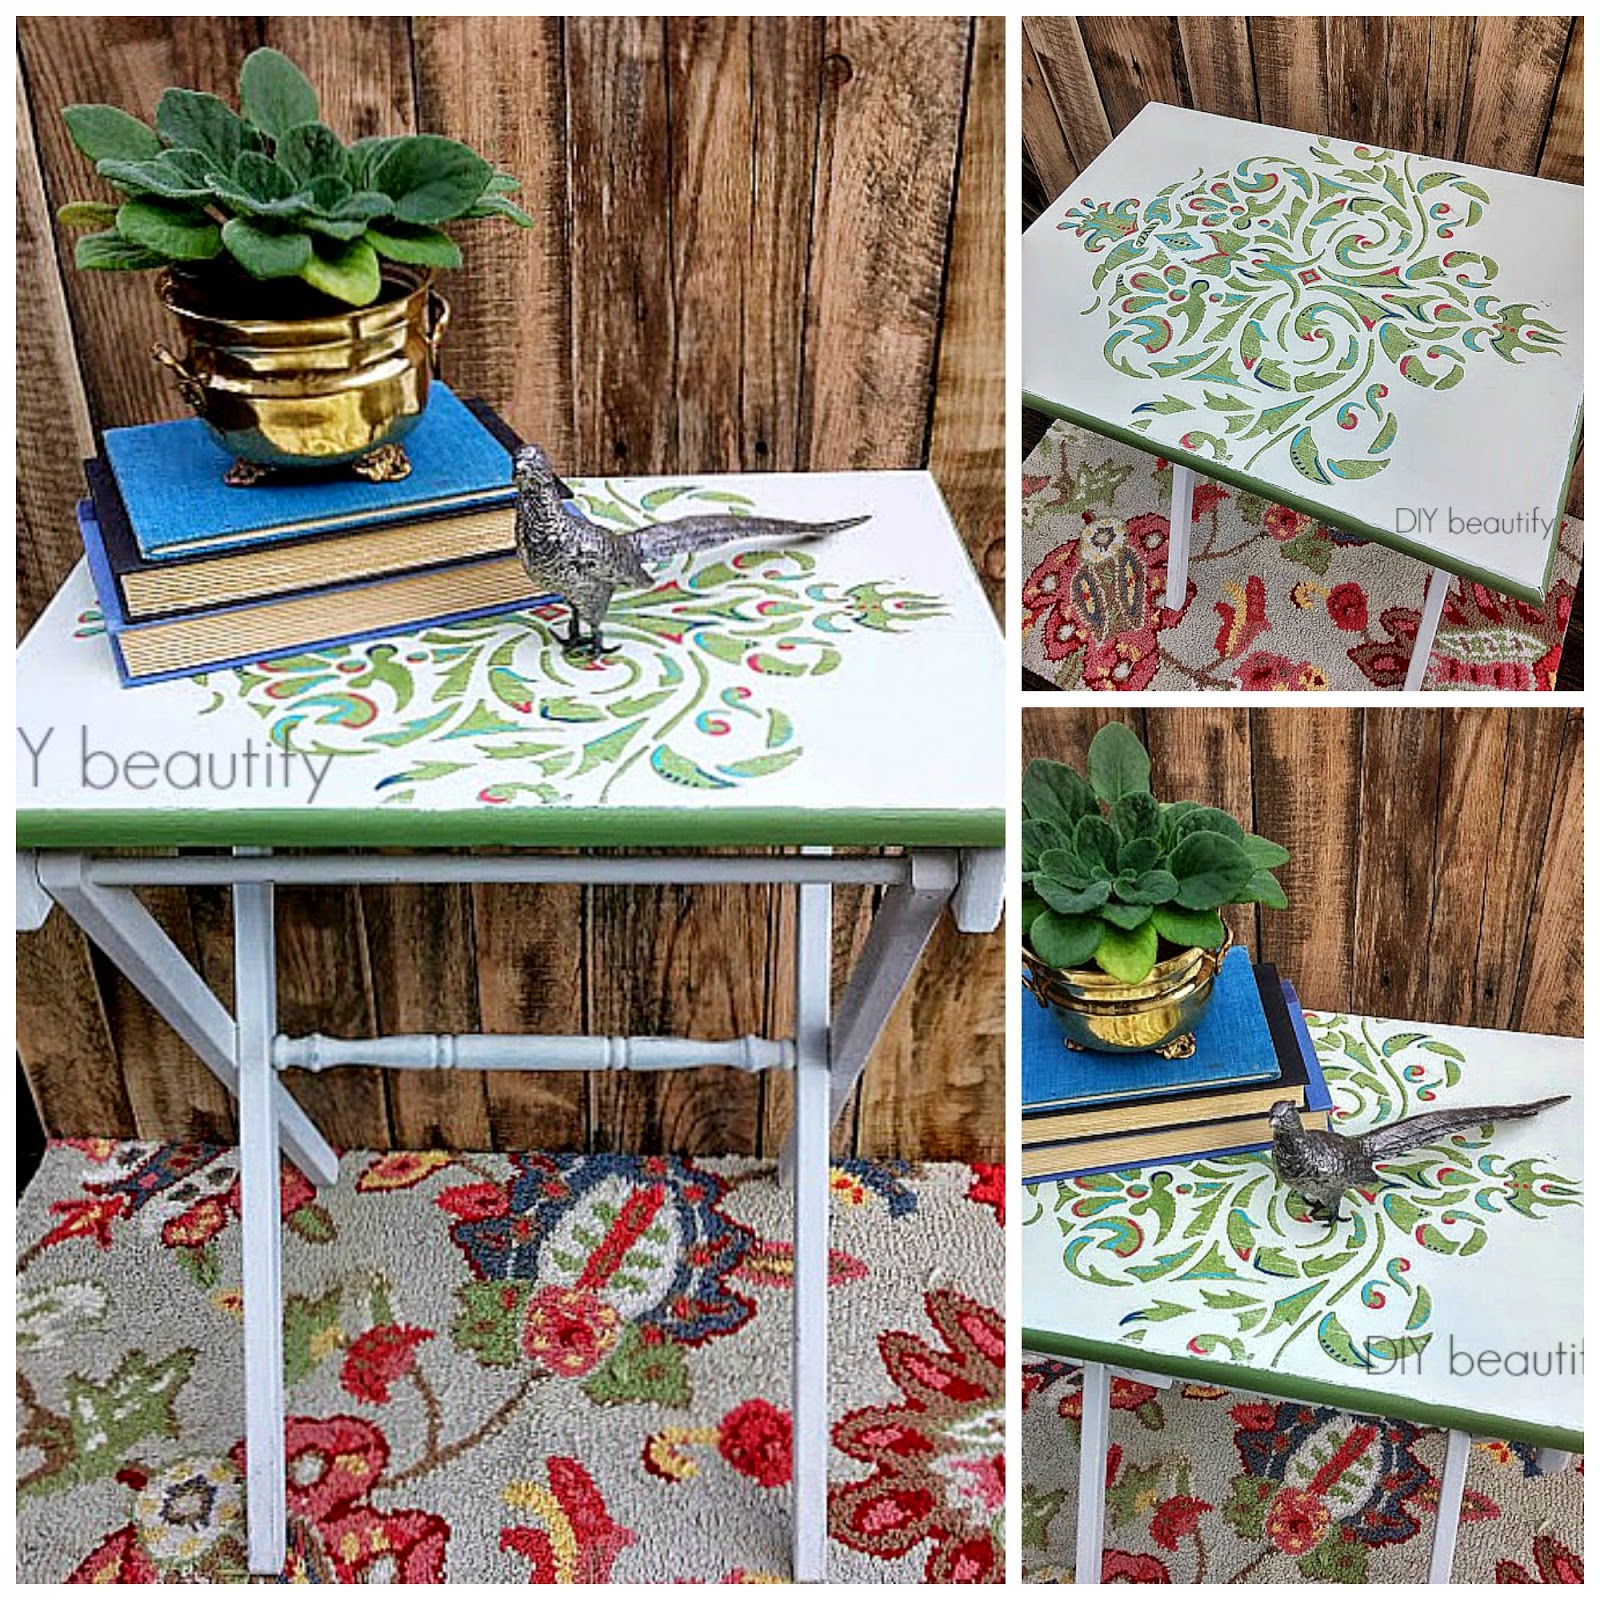 How to stencil a table top www.diybeautify.com